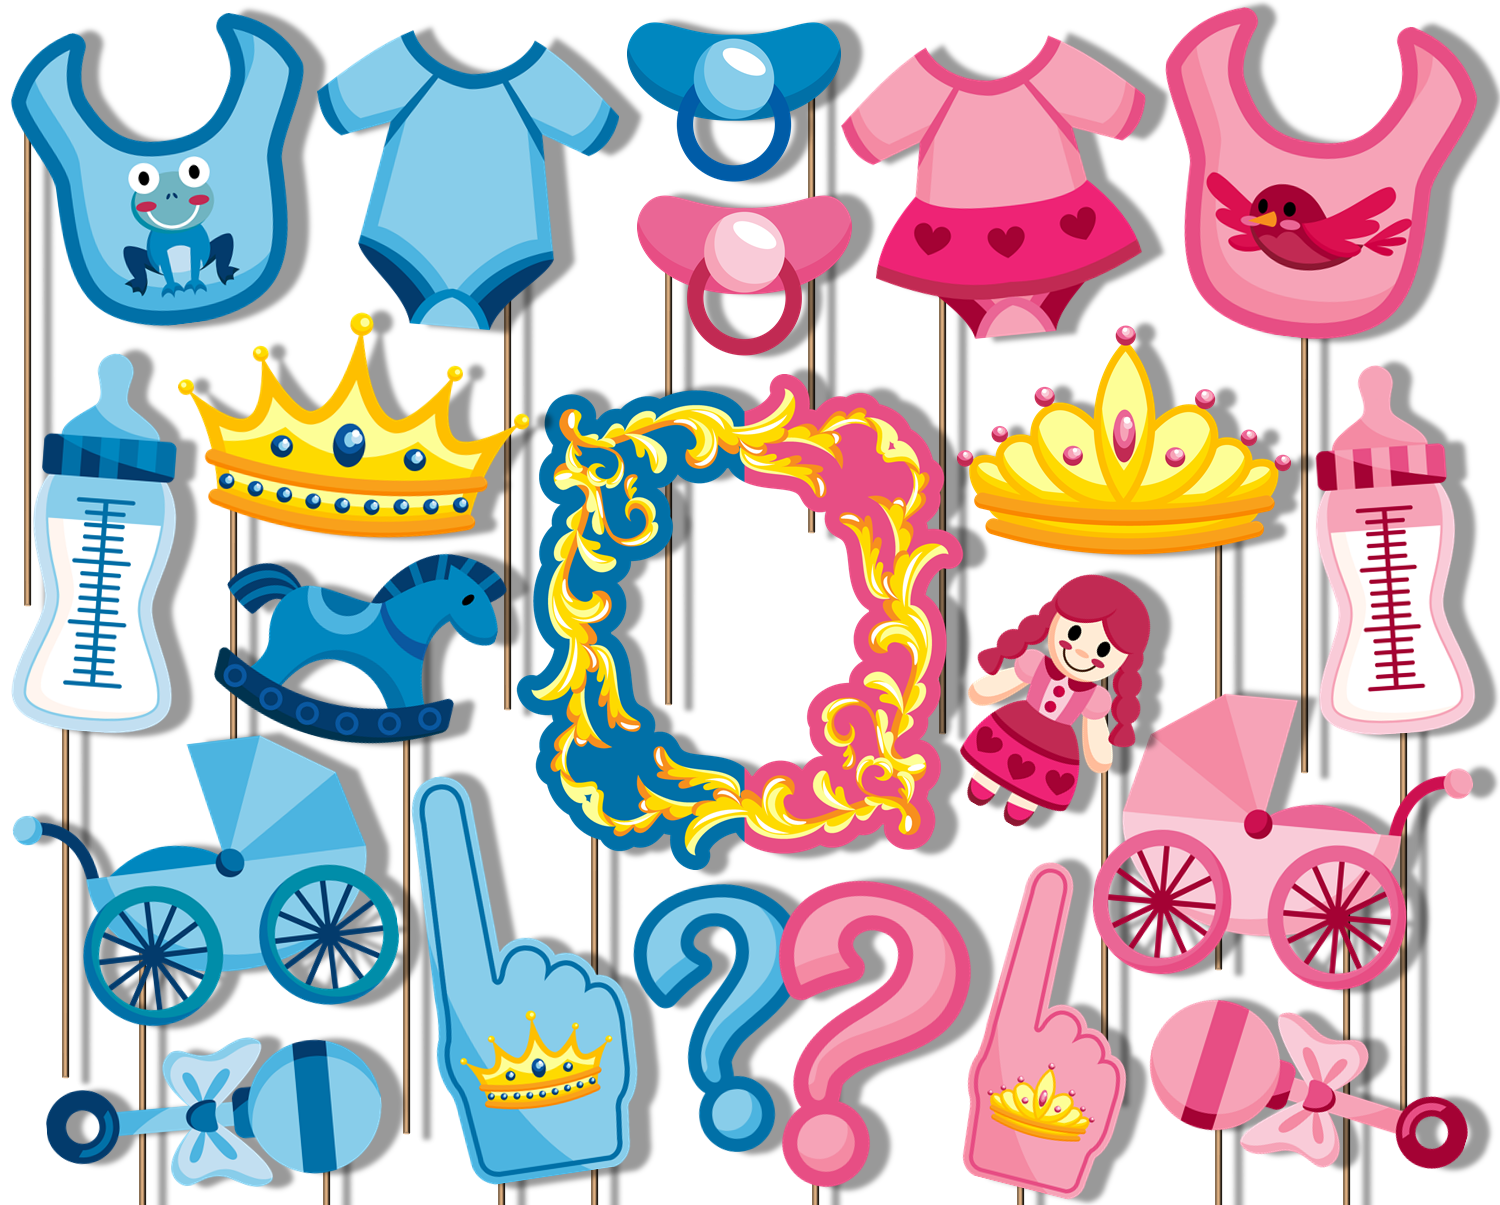 Prince or Princess Gender Reveal Photo Booth Props 20pcs Assembled